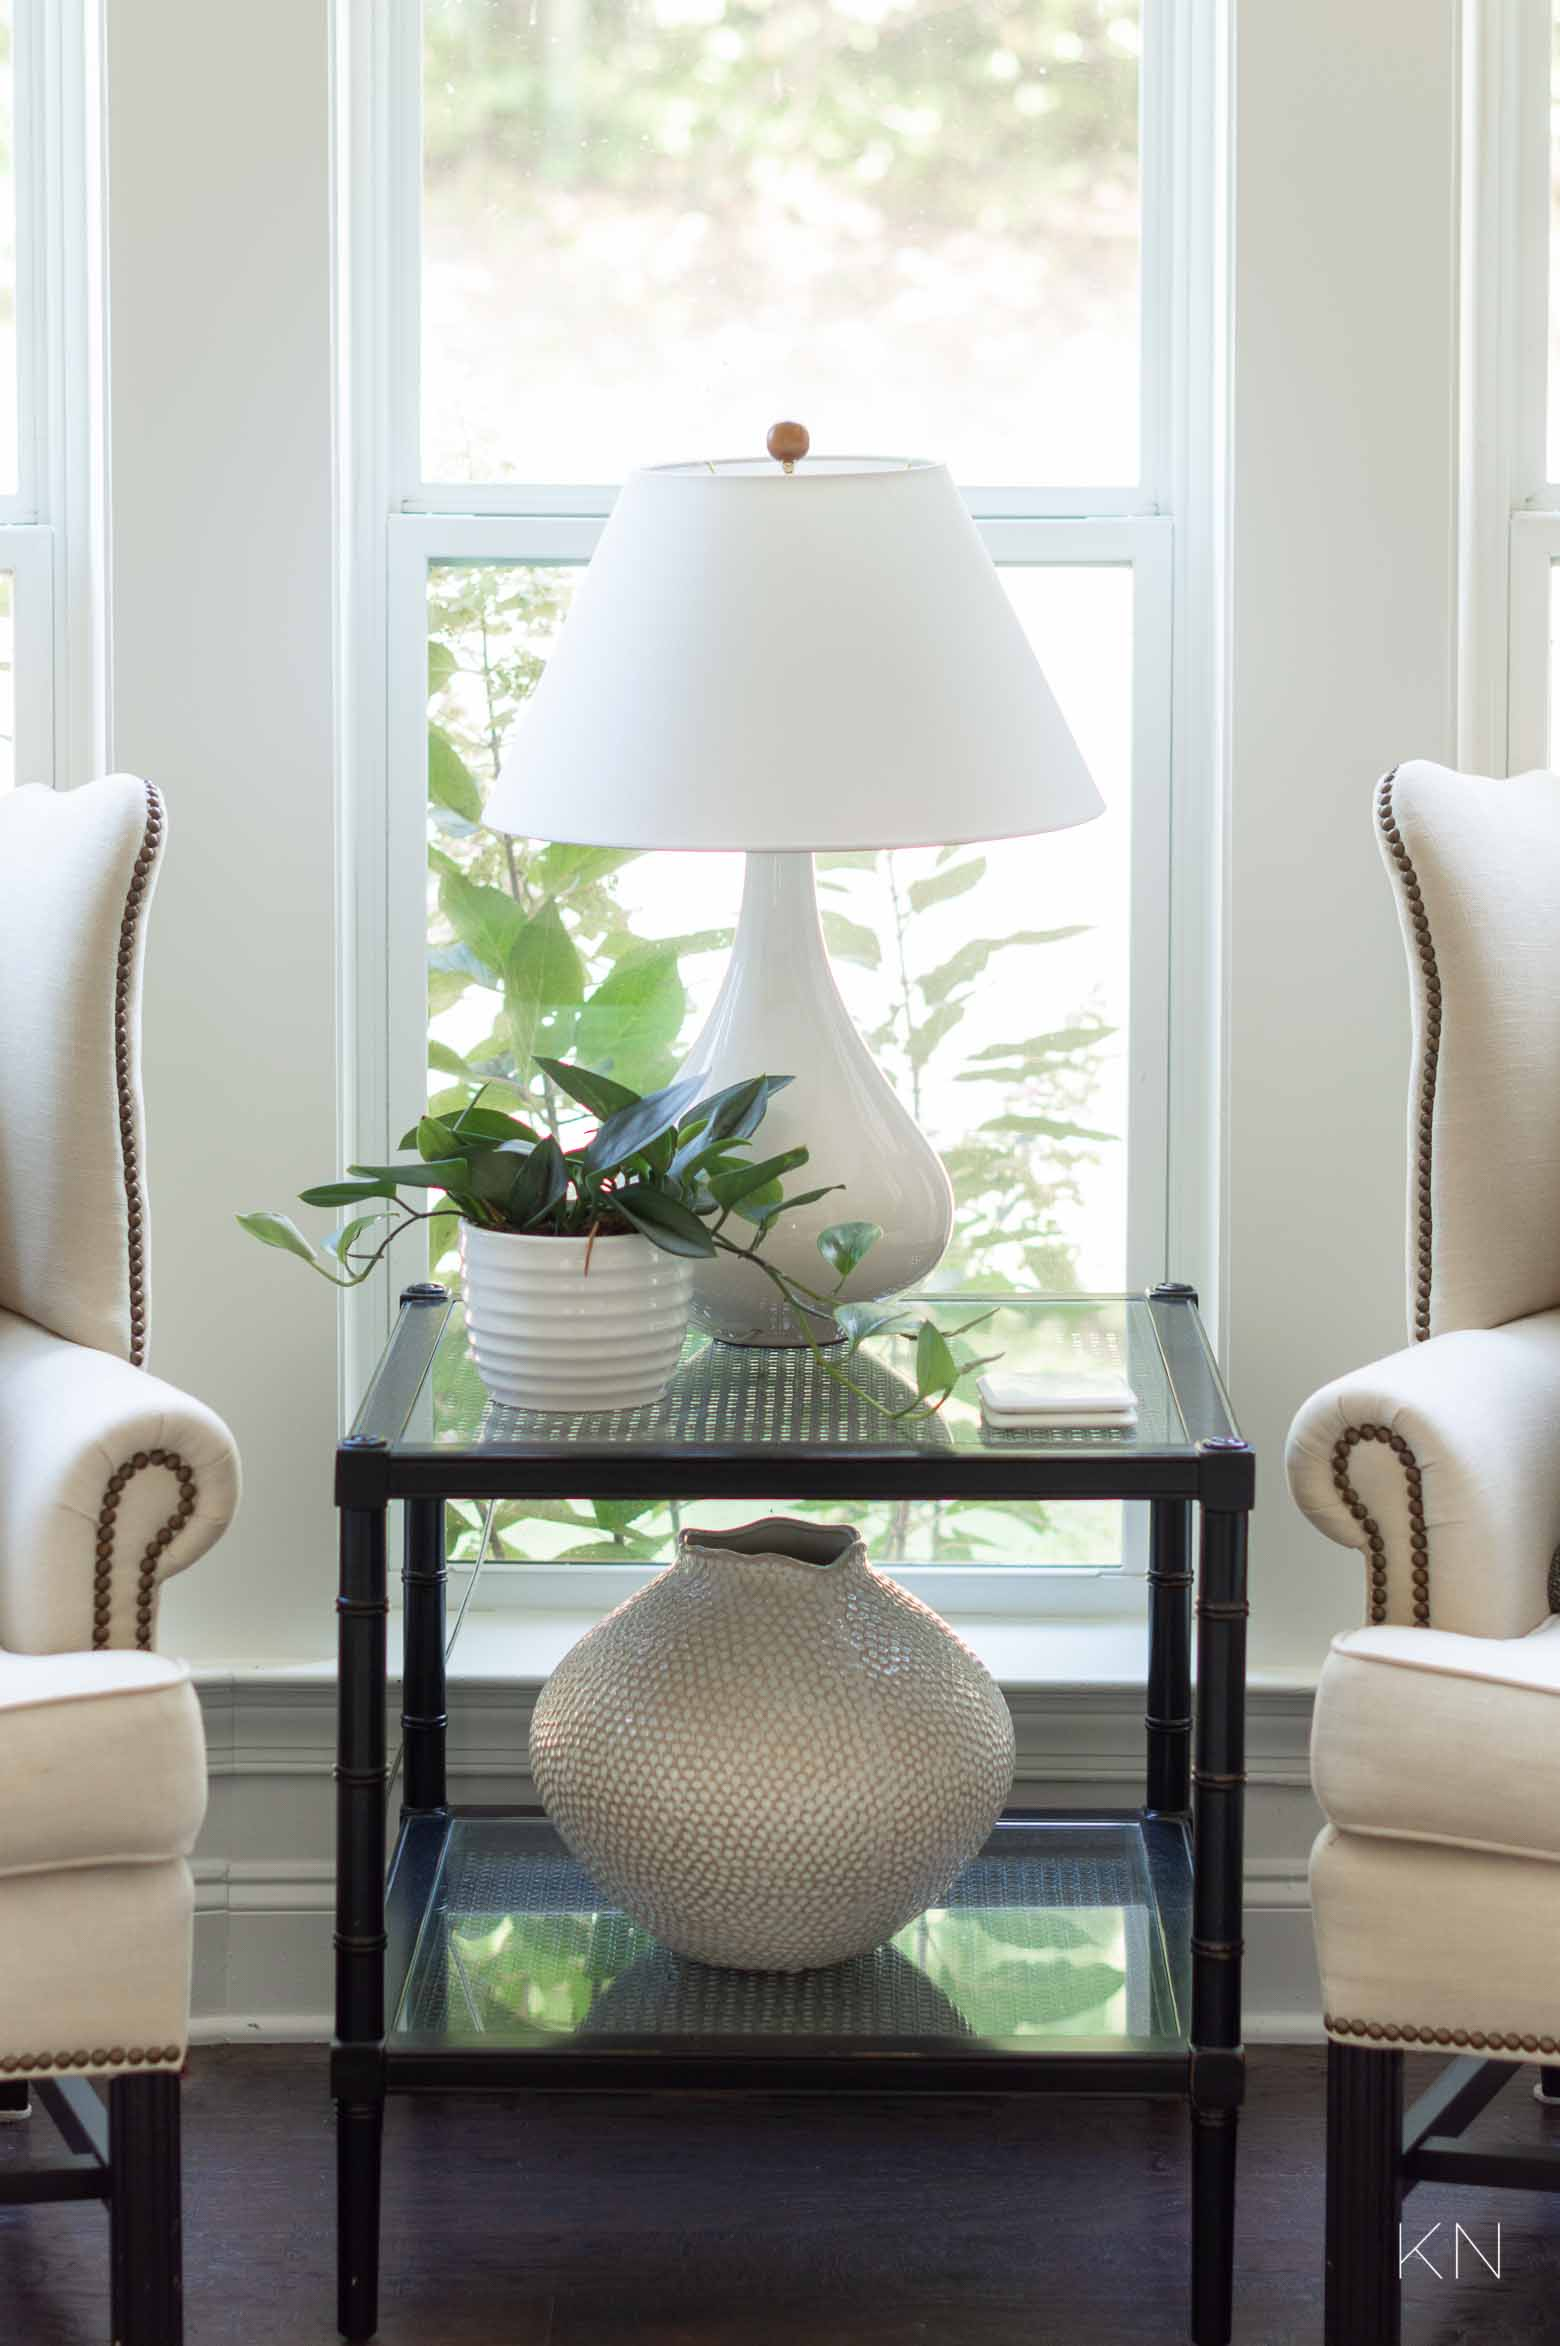 Sitting Room Decor Ideas in the Living Room